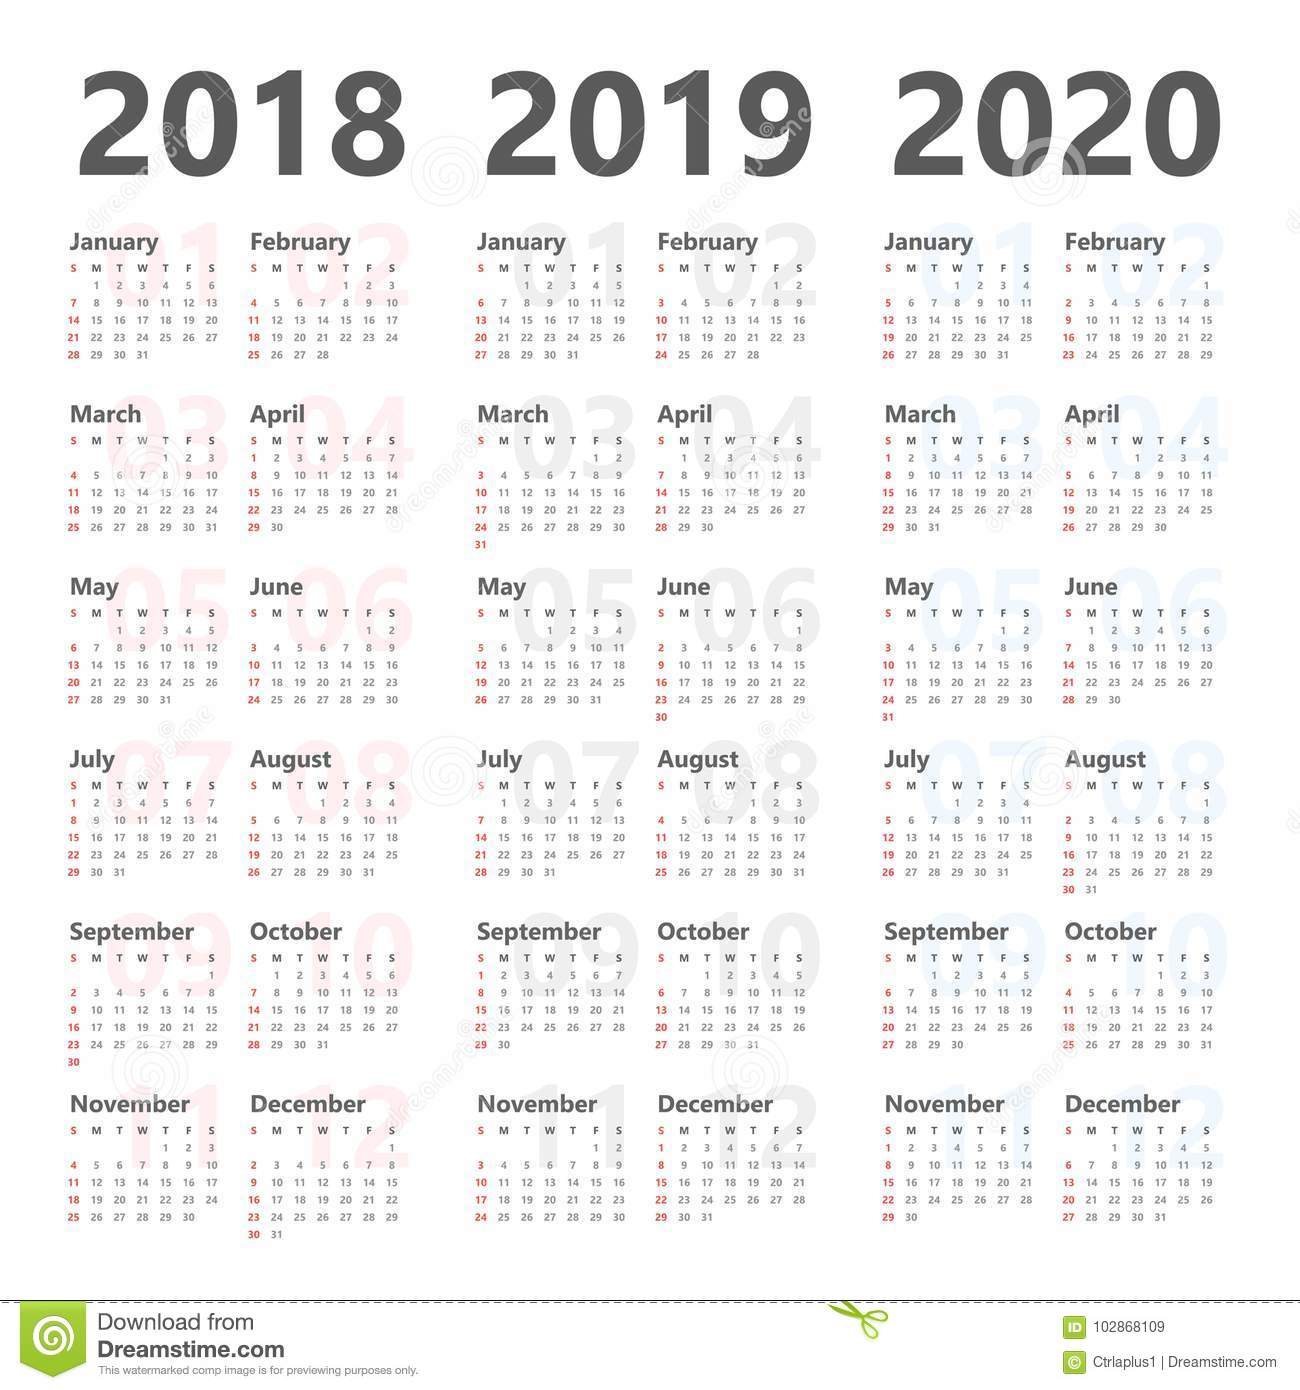 yearly wall calendar planner for next 3 years 2018 to 2020 vector template